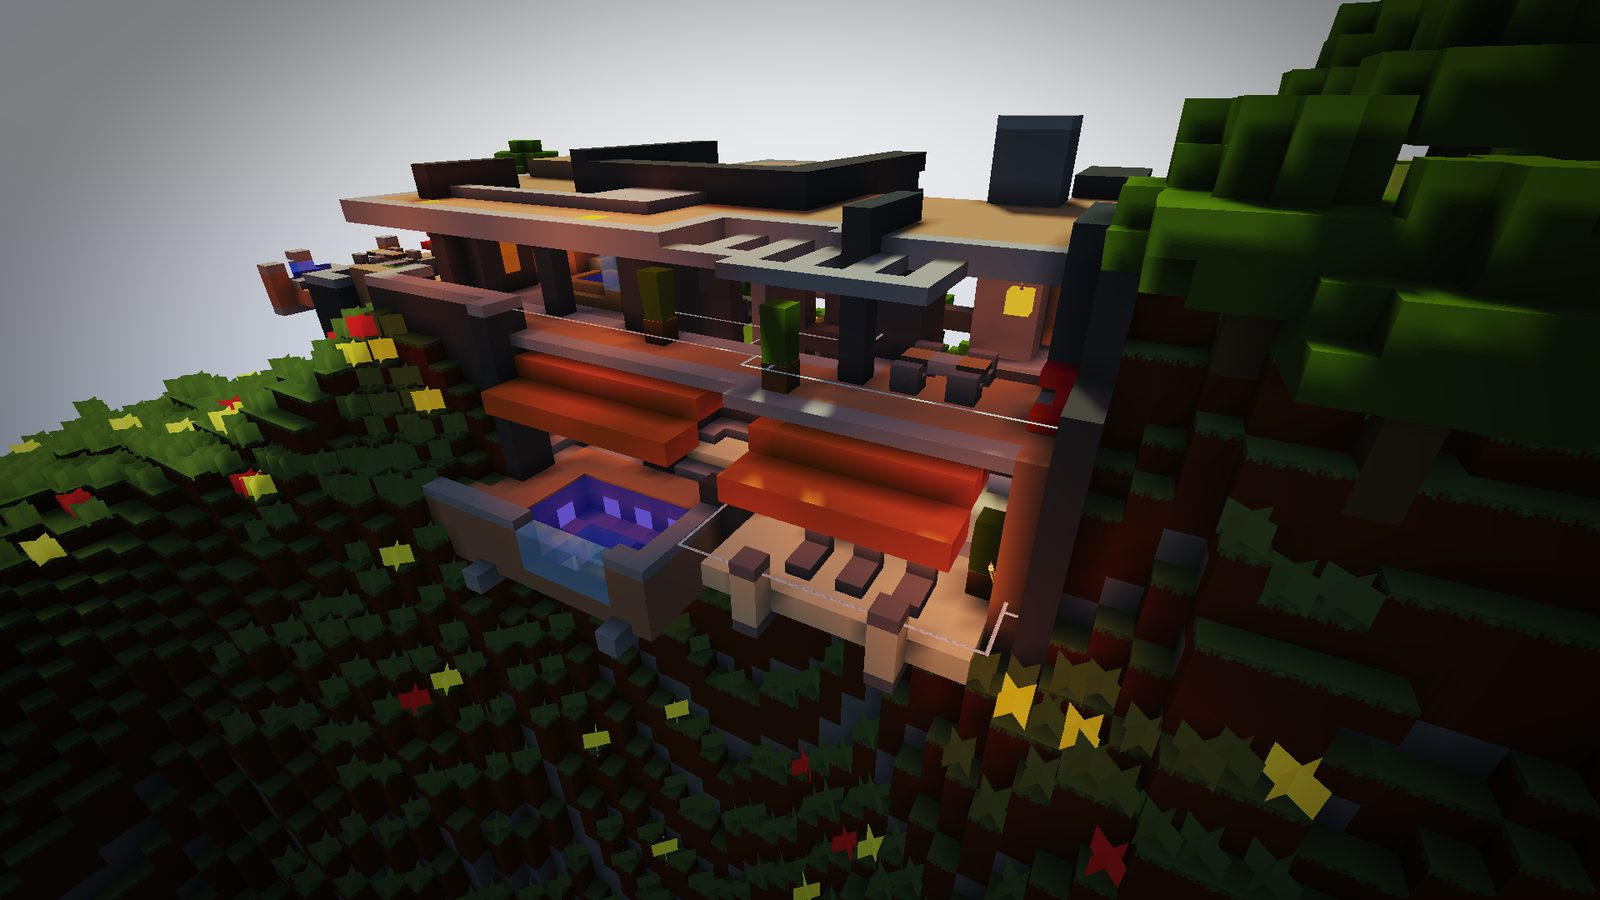 1 Pixel Resource pack for Minecraft